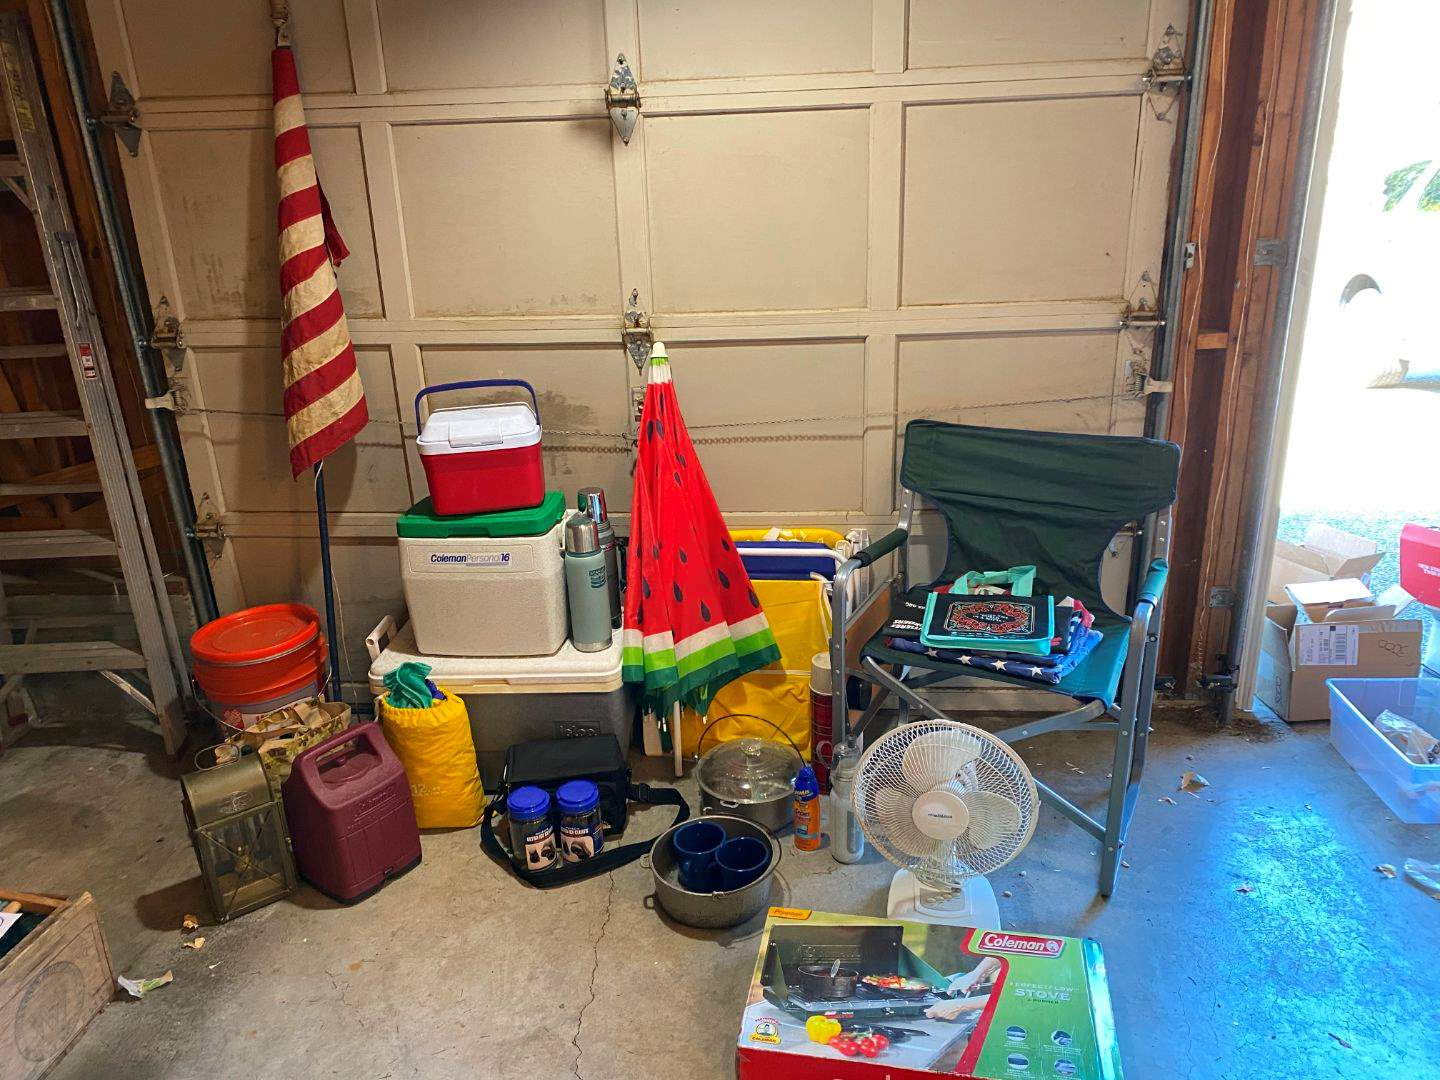 Lot # 236 - Camping: Coleman Stove, Coolers, Folding Chairs, Coleman Lantern, Cookware, Flags & More. (main image)